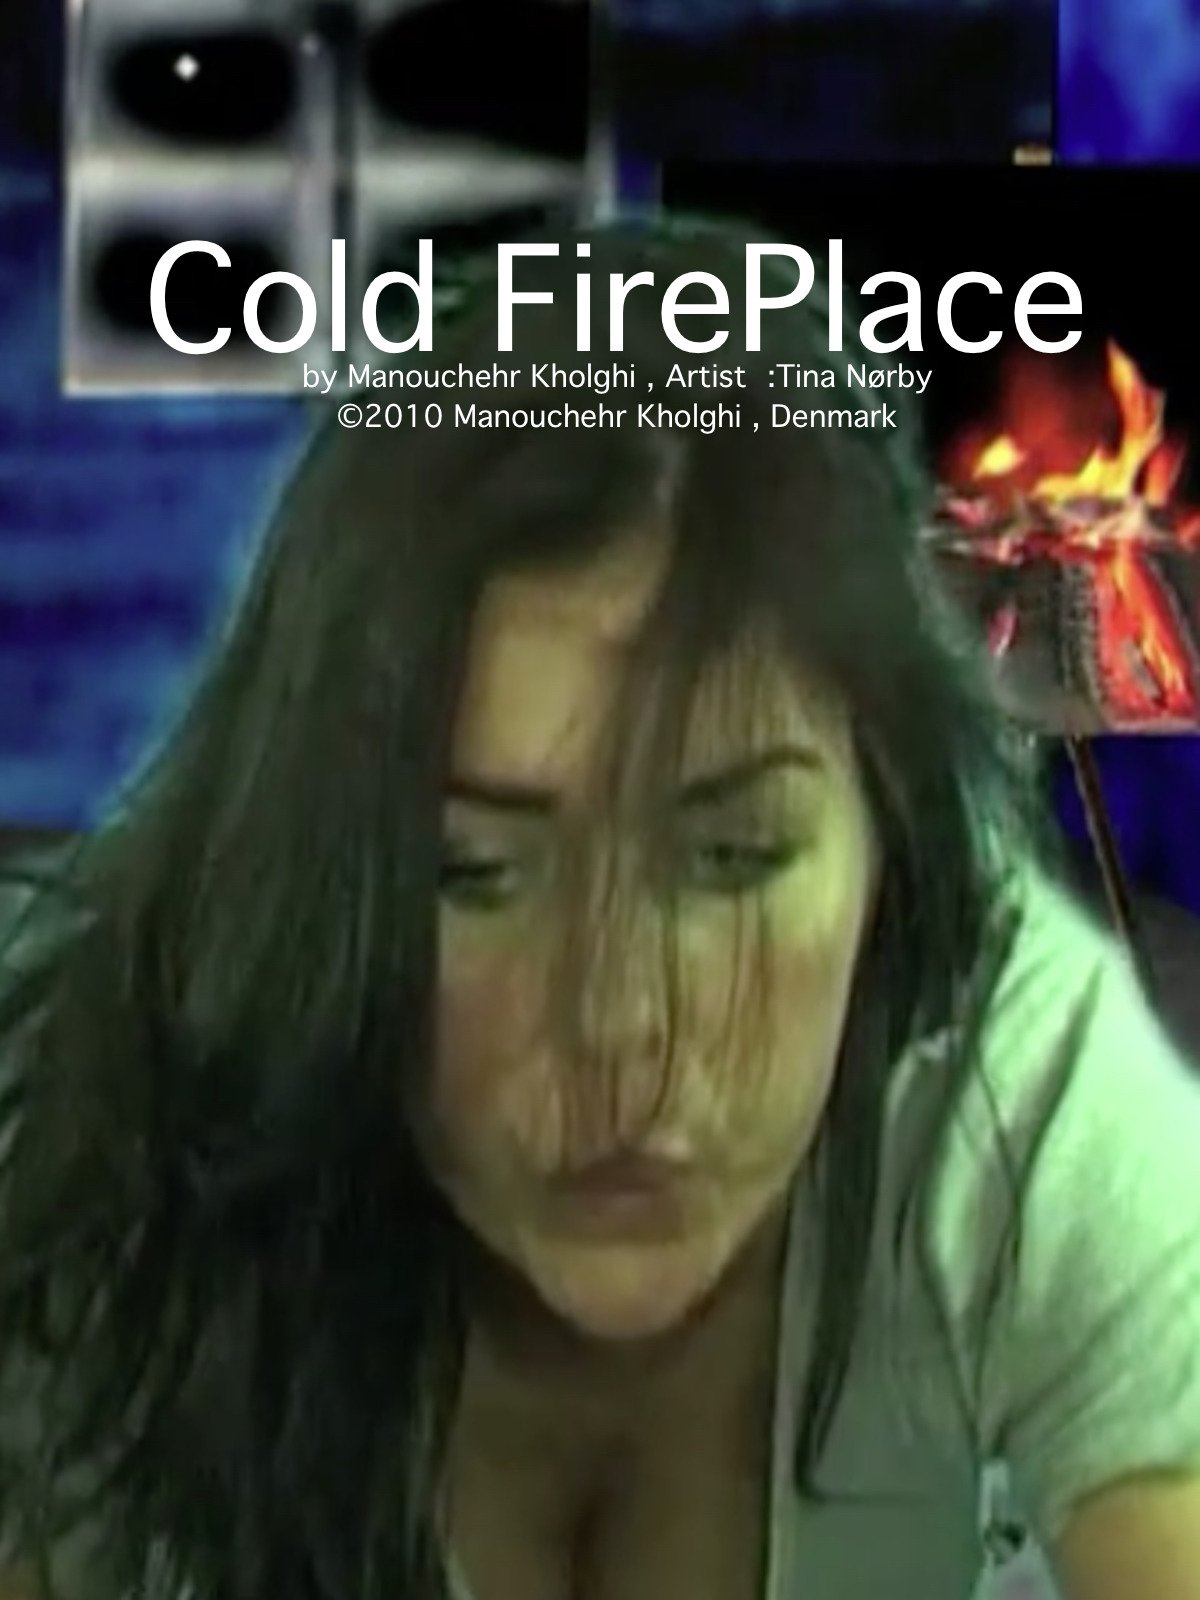 Cold FirePlace